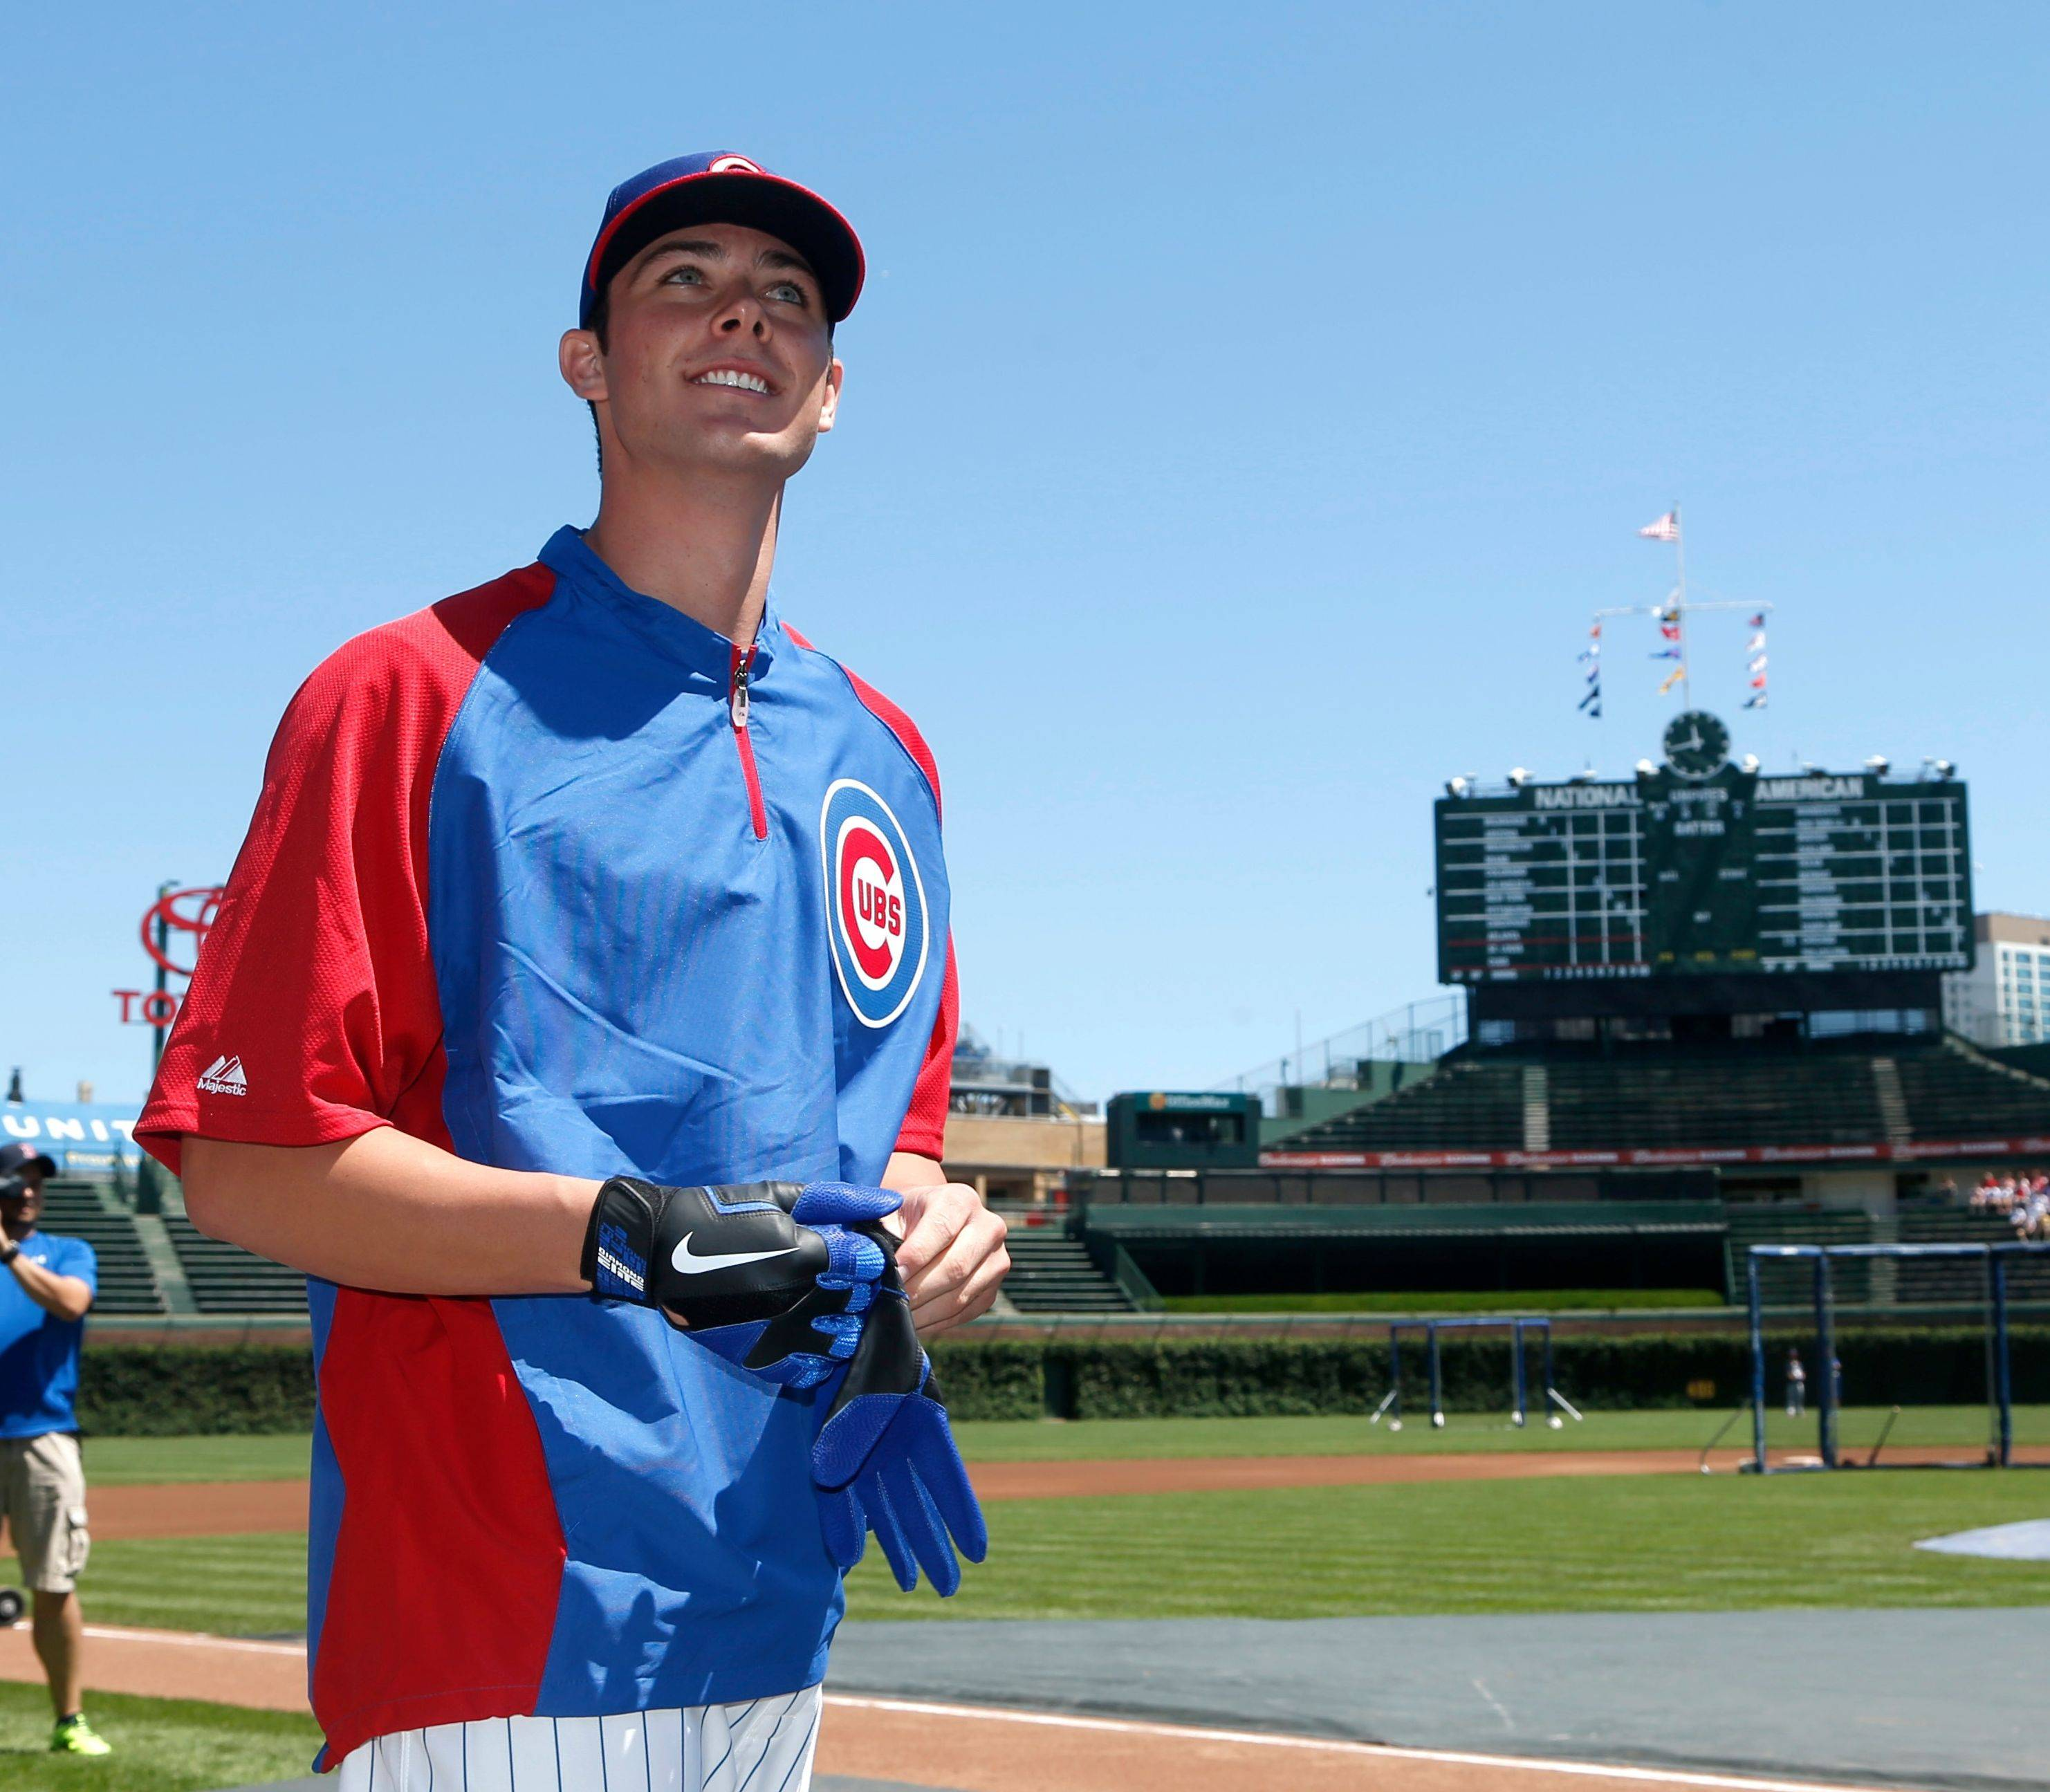 Cubs' farm system seems ready to produce